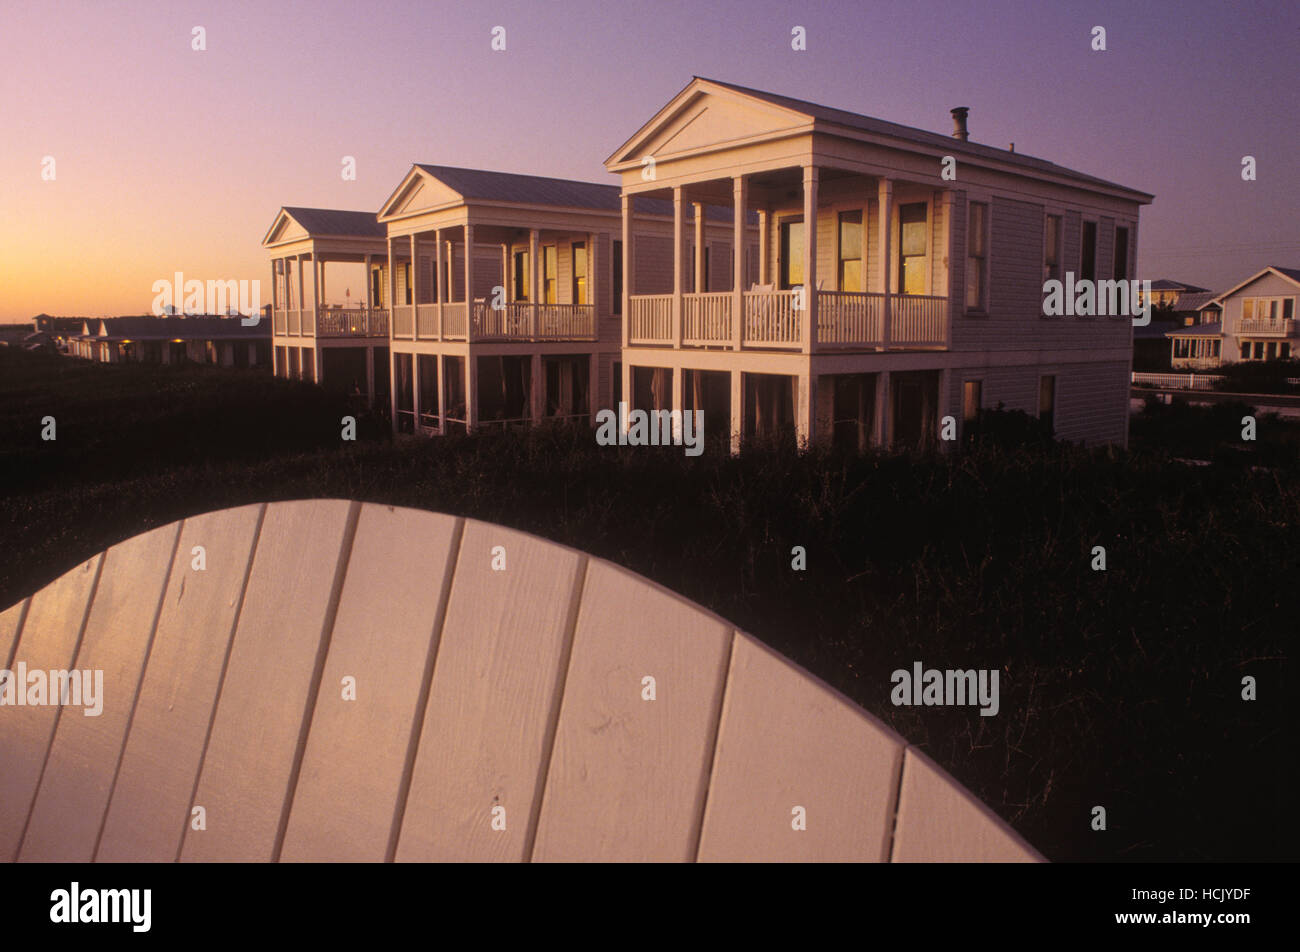 Twilight eliminates three identical wood framed cottages from a bench at the Seaside community in Florida. - Stock Image